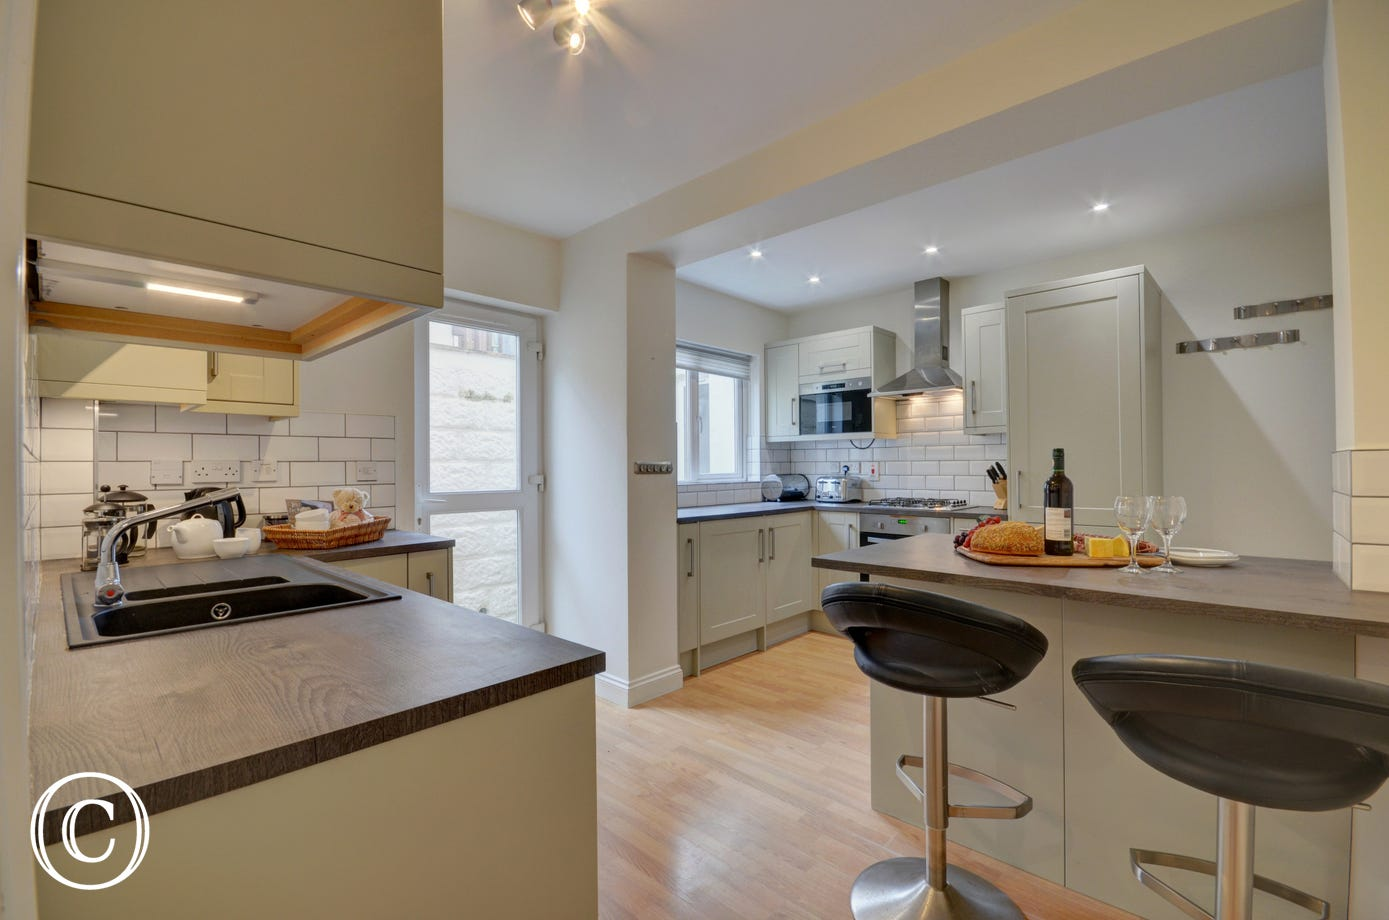 A separate, modern and well equipped kitchen with an additional small table for breakfast is to the rear